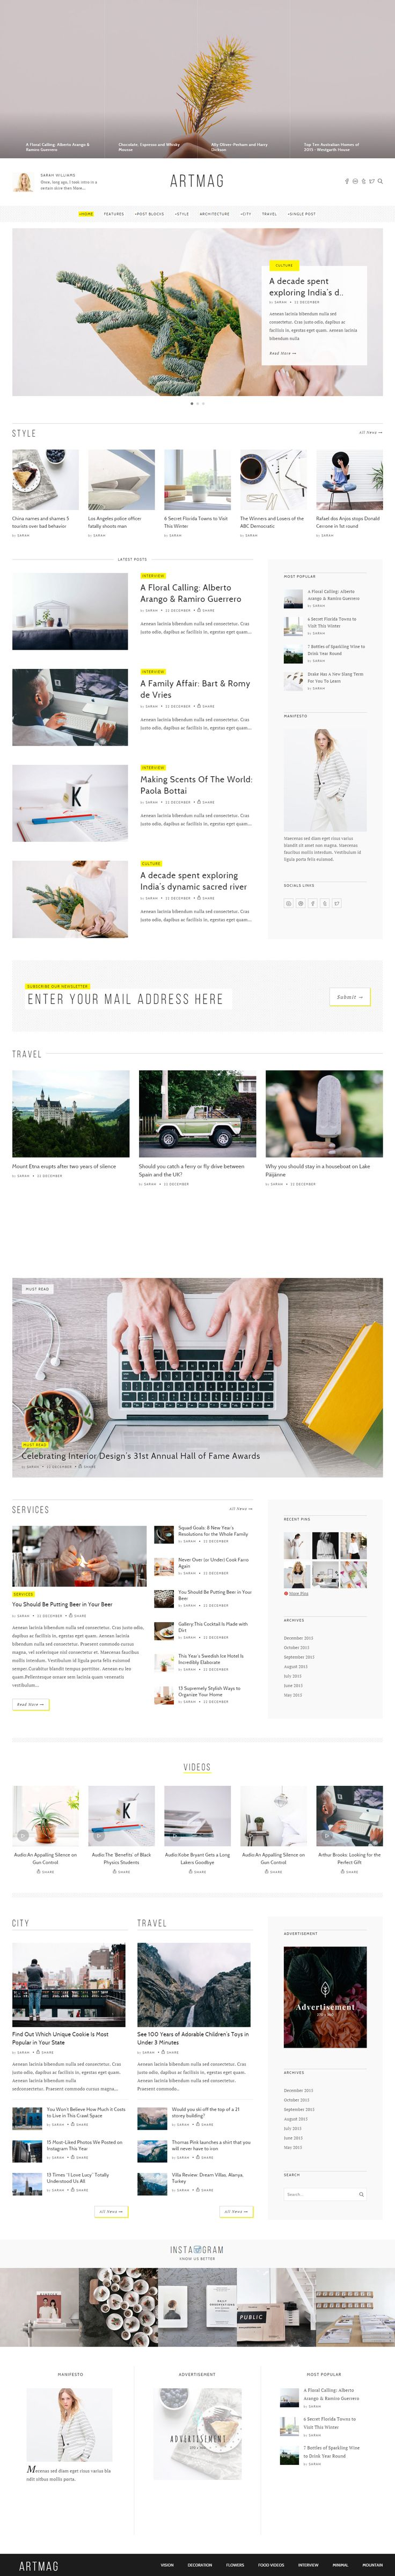 Artmag is Premium full Responsive Retina #WordPress #Magazine Theme. Visual Composer. Bootstrap 3 Framework. #MinimalDesign. Test free demo at: http://www.responsivemiracle.com/artmag-premium-responsive-wordpress-magazine-theme/